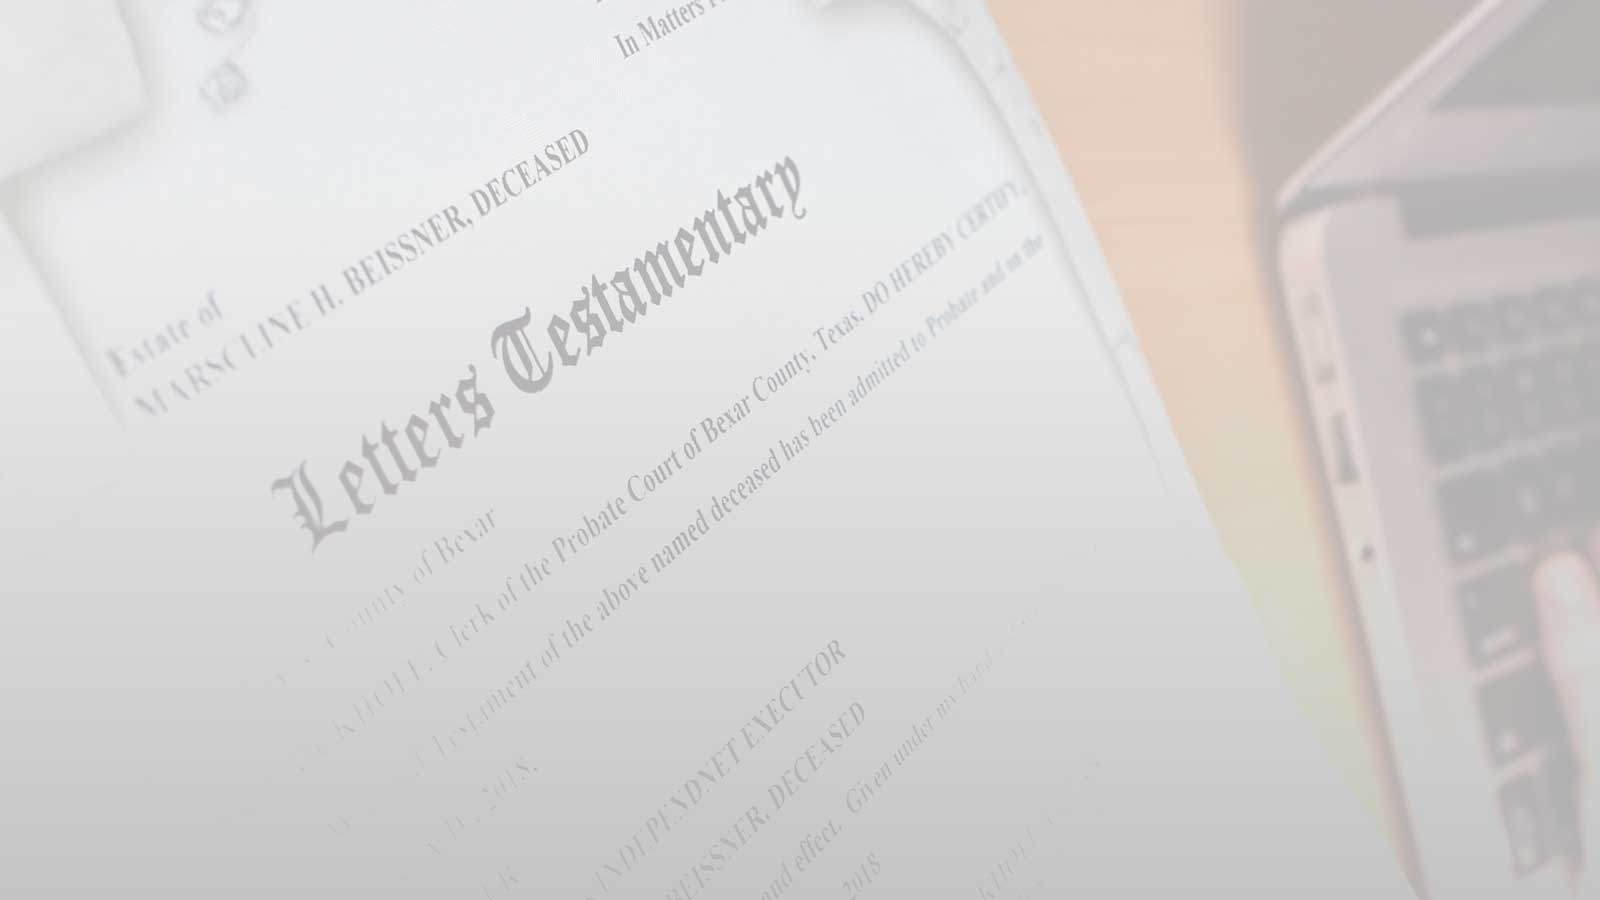 letters of testamentary